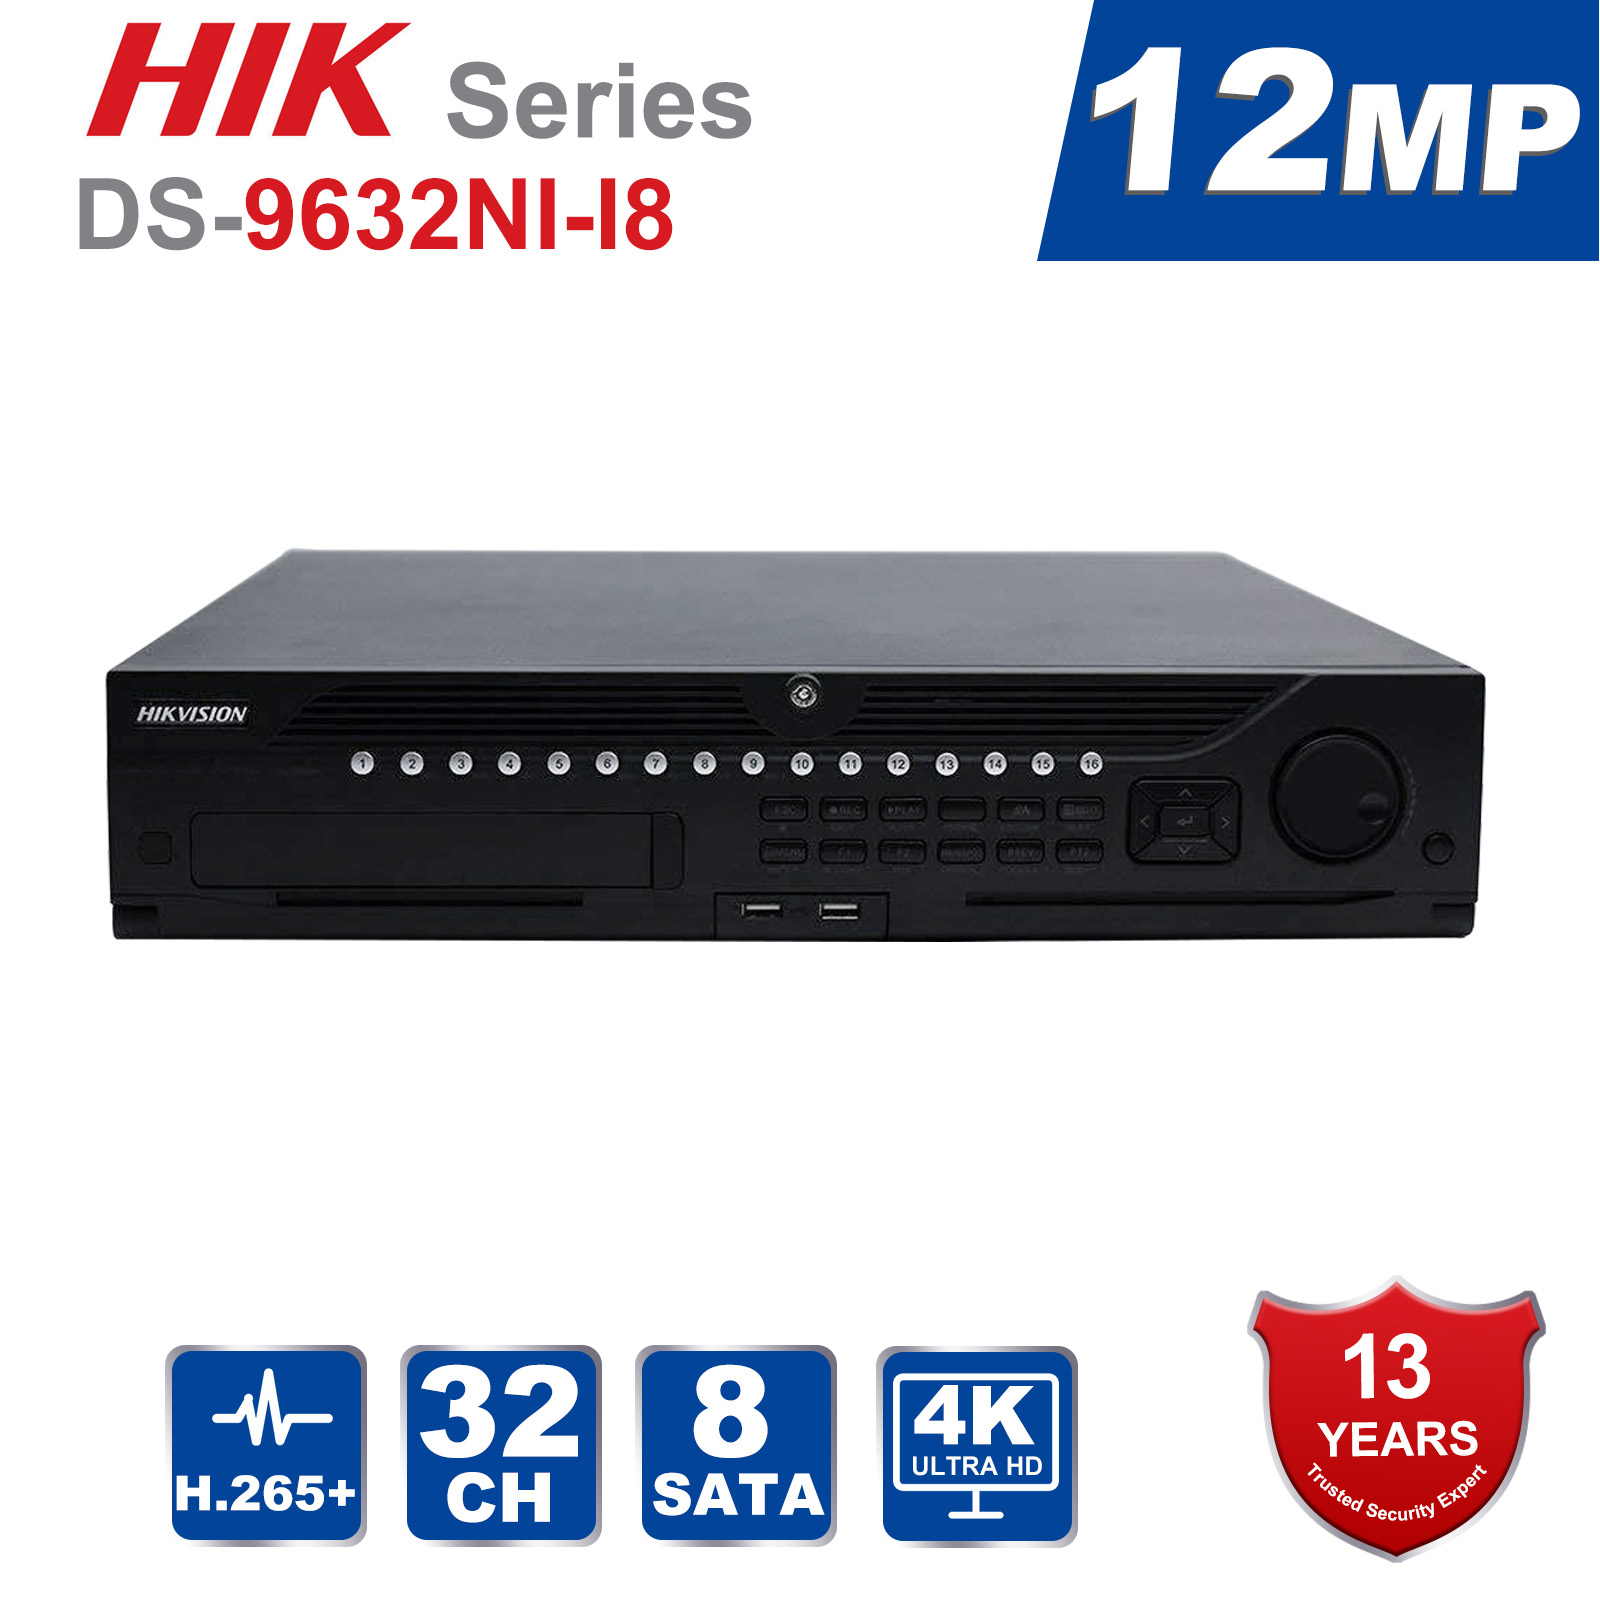 Hik Original Professional 32 Channel CCTV System DS-9632NI-I8 Embedded 4K 32 CH NVR Up to 12 Megapixels Resolution 8 SATA 2 HDMIHik Original Professional 32 Channel CCTV System DS-9632NI-I8 Embedded 4K 32 CH NVR Up to 12 Megapixels Resolution 8 SATA 2 HDMI